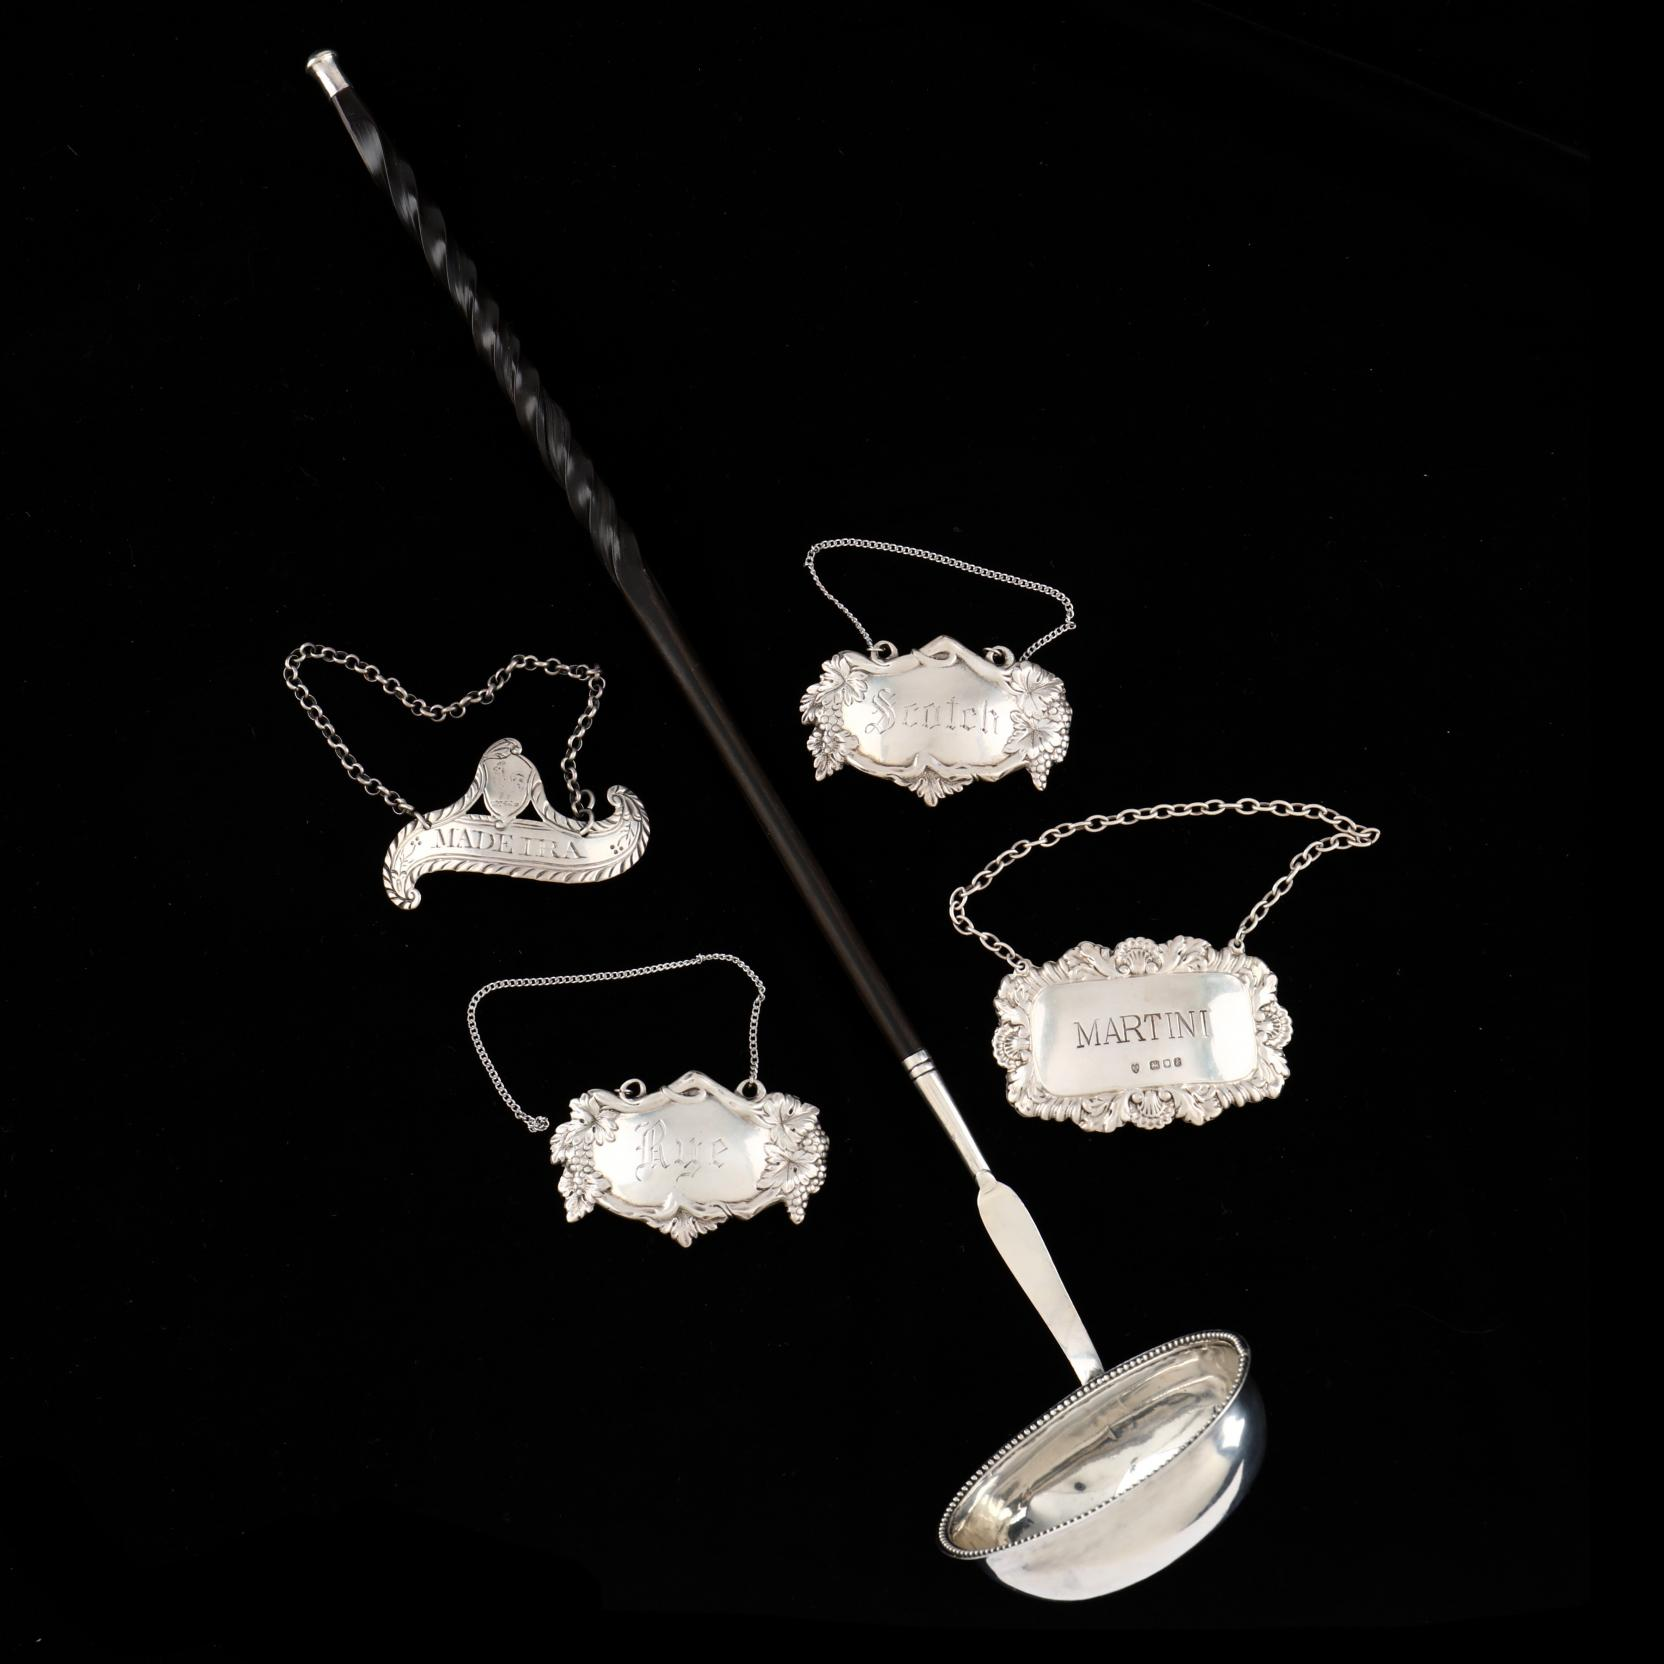 a-georgian-silver-toddy-ladle-and-four-silver-decanter-labels